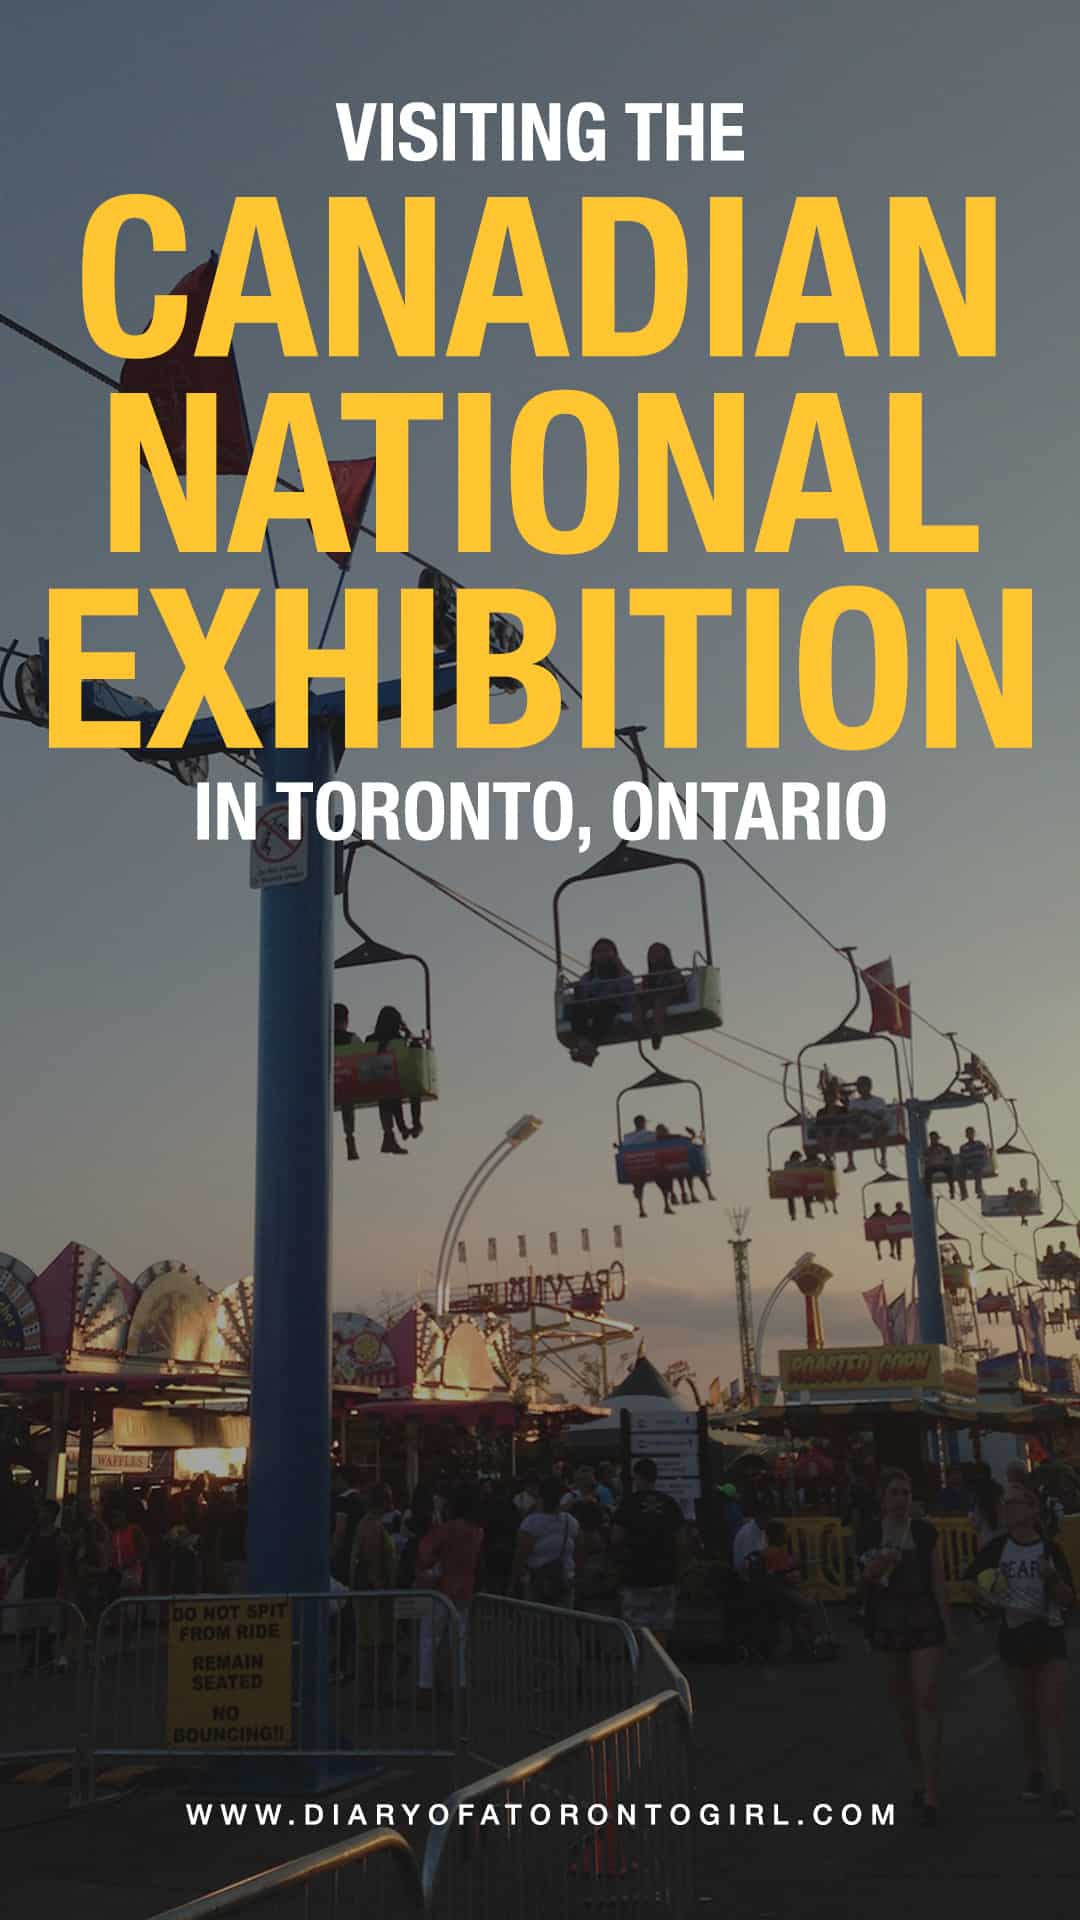 Curious about the weird foods at the CNE this year? Here are crazy things you need to try at the Canadian National Exhibition in Toronto, including cricket-covered hot dogs and bacon-topped ice cream.